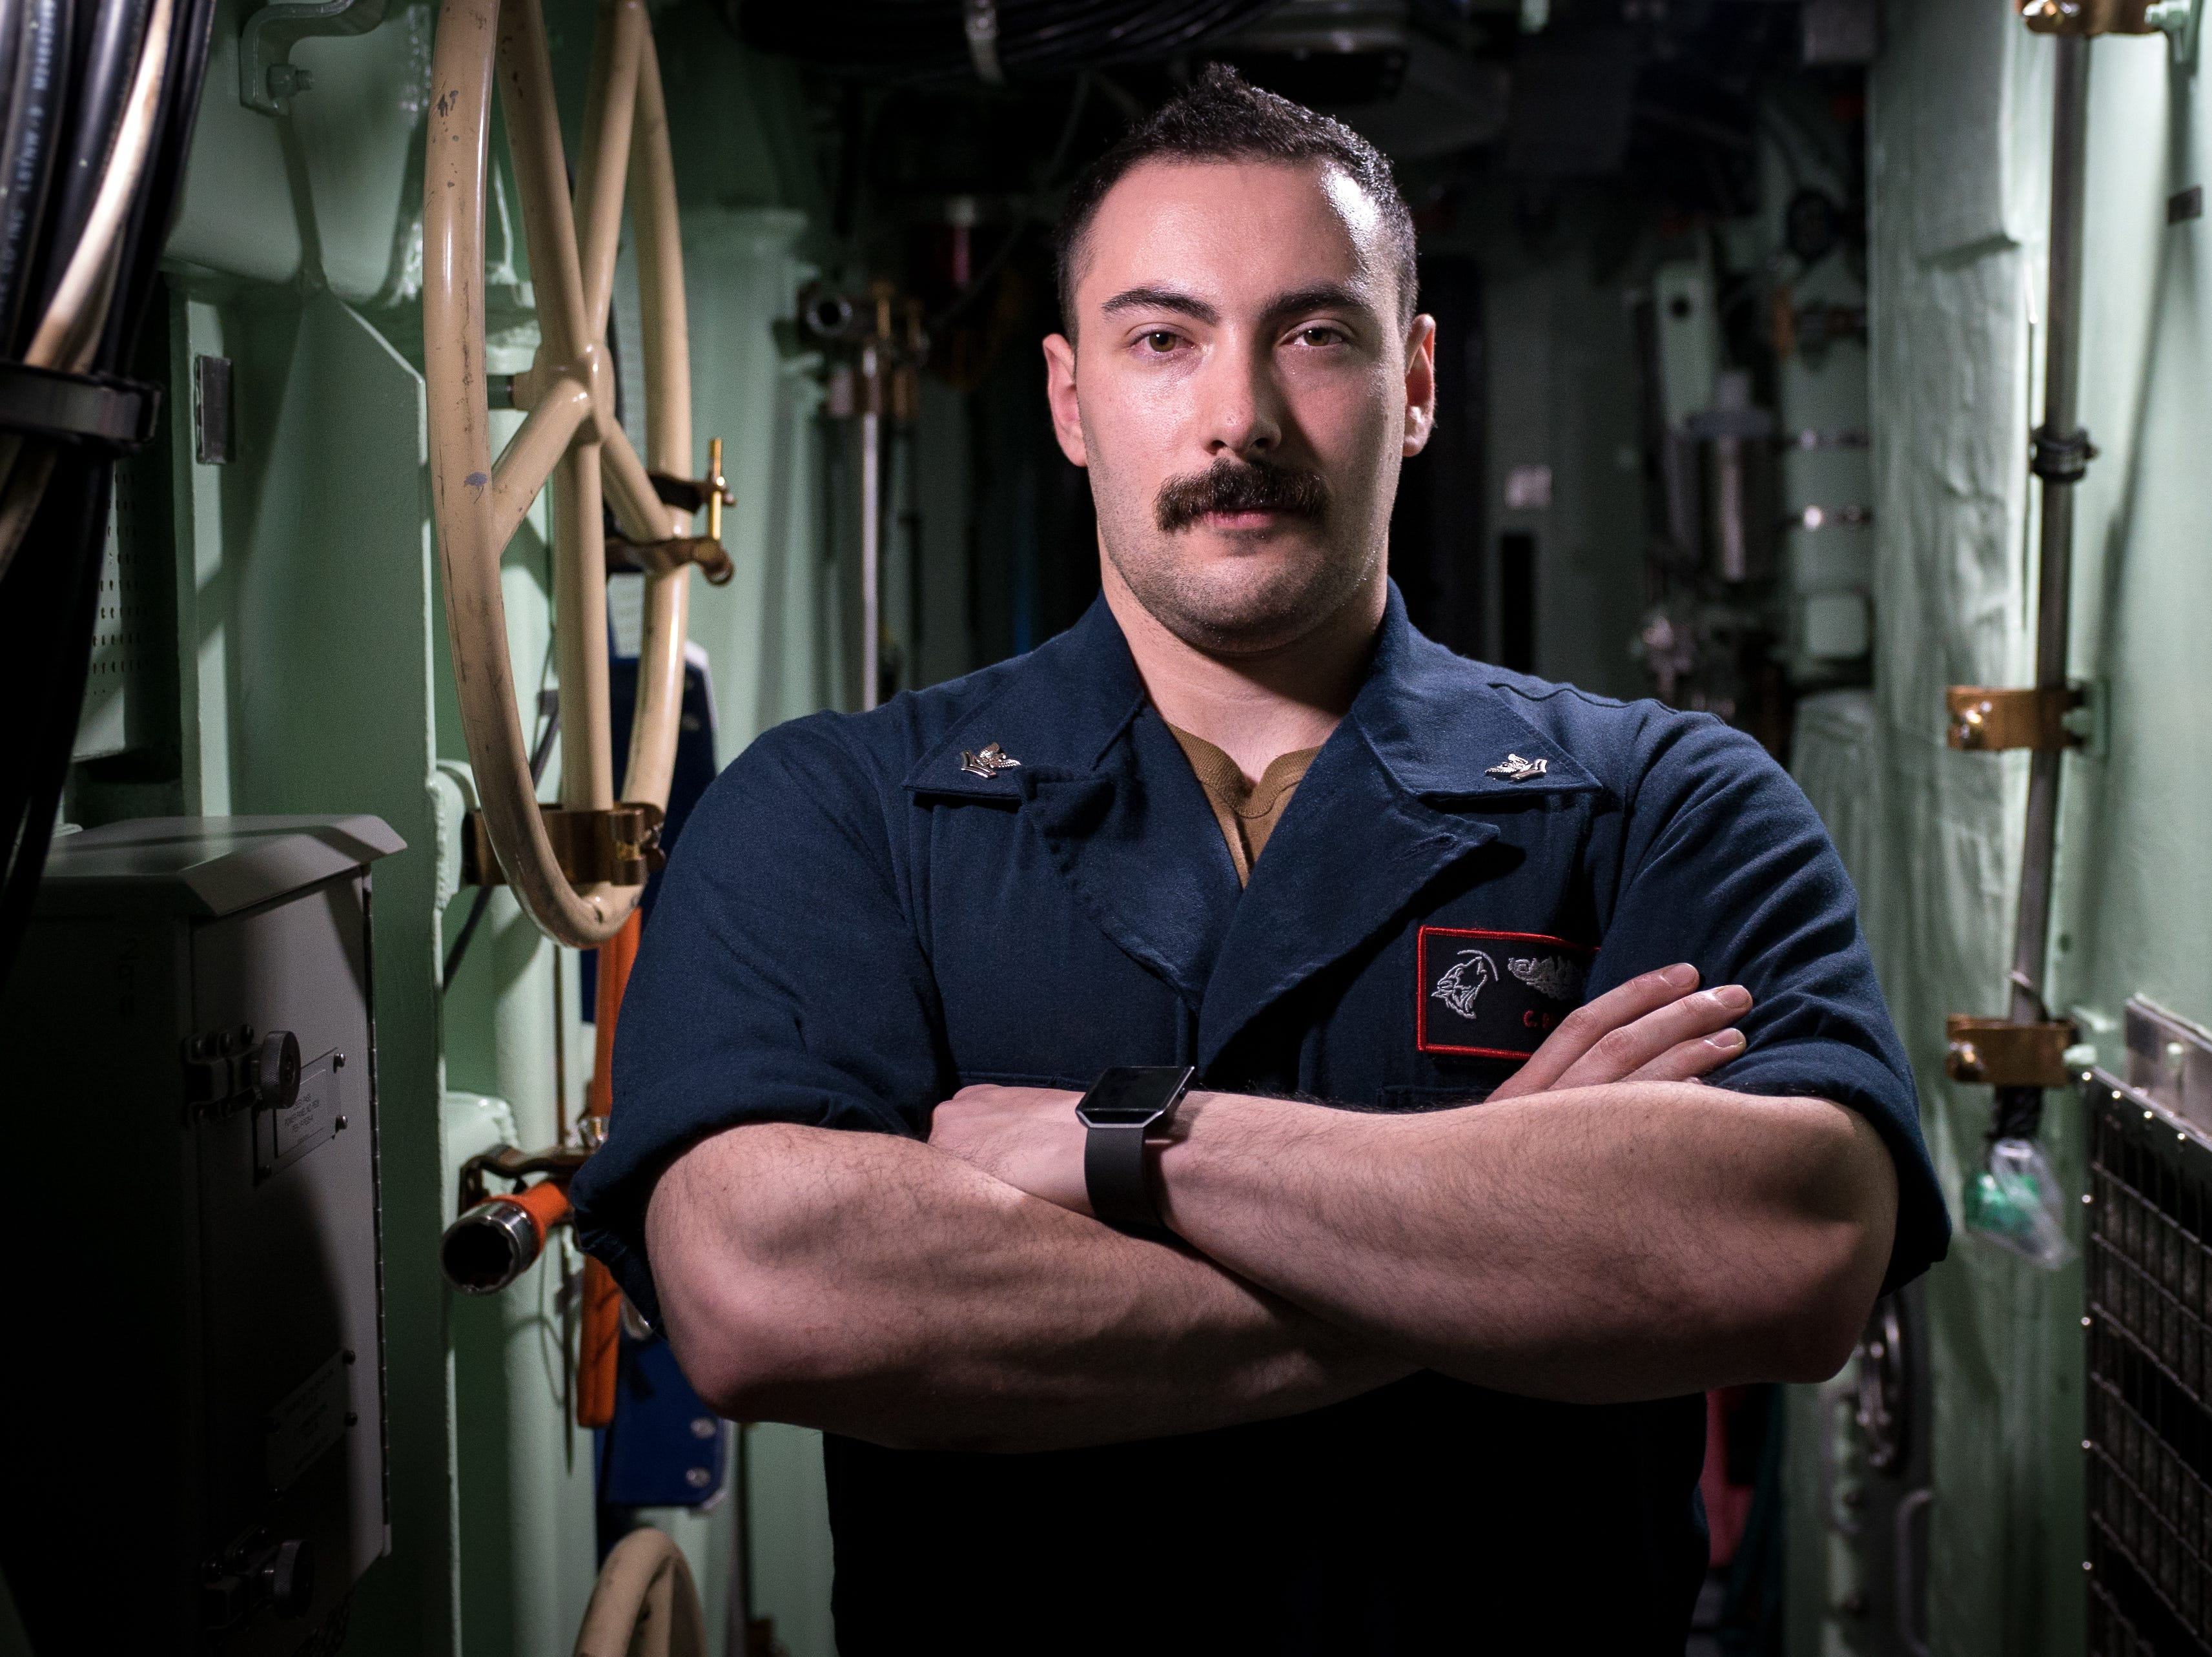 U.S. Navy Petty Officer 2nd Class Christopher Bradley, a pre-commissioned Unit (PCU) South Dakota submariner, poses for a photo during an underway somewhere in the Atlantic Ocean Nov. 27.